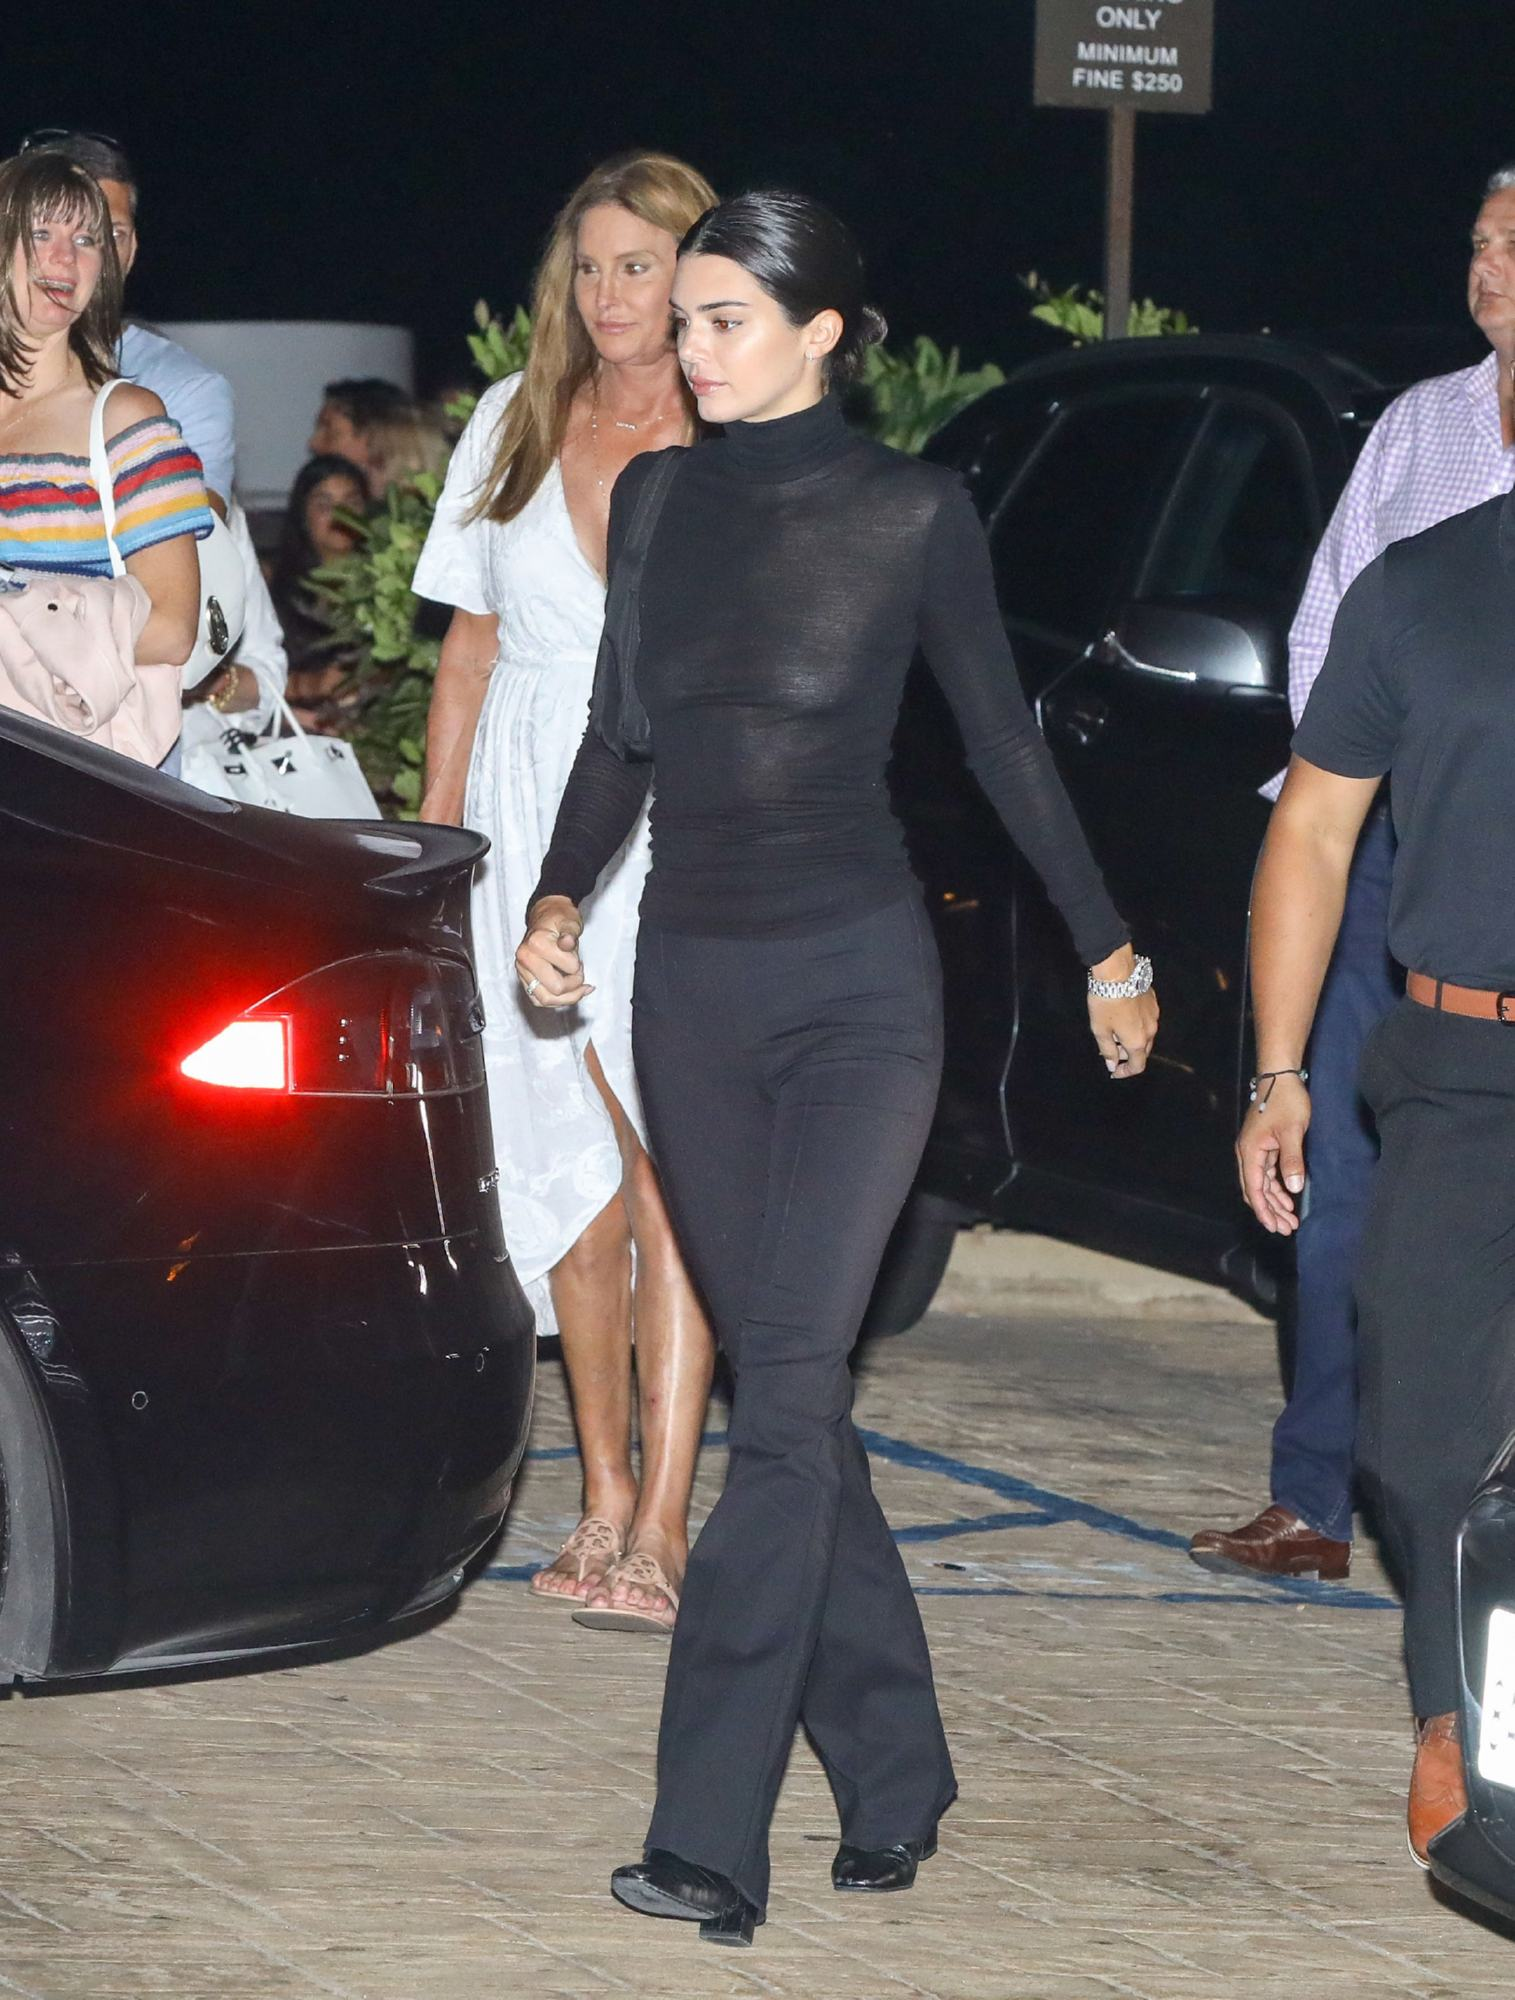 Kendall Jenner wore two naked dresses at Cannes Film